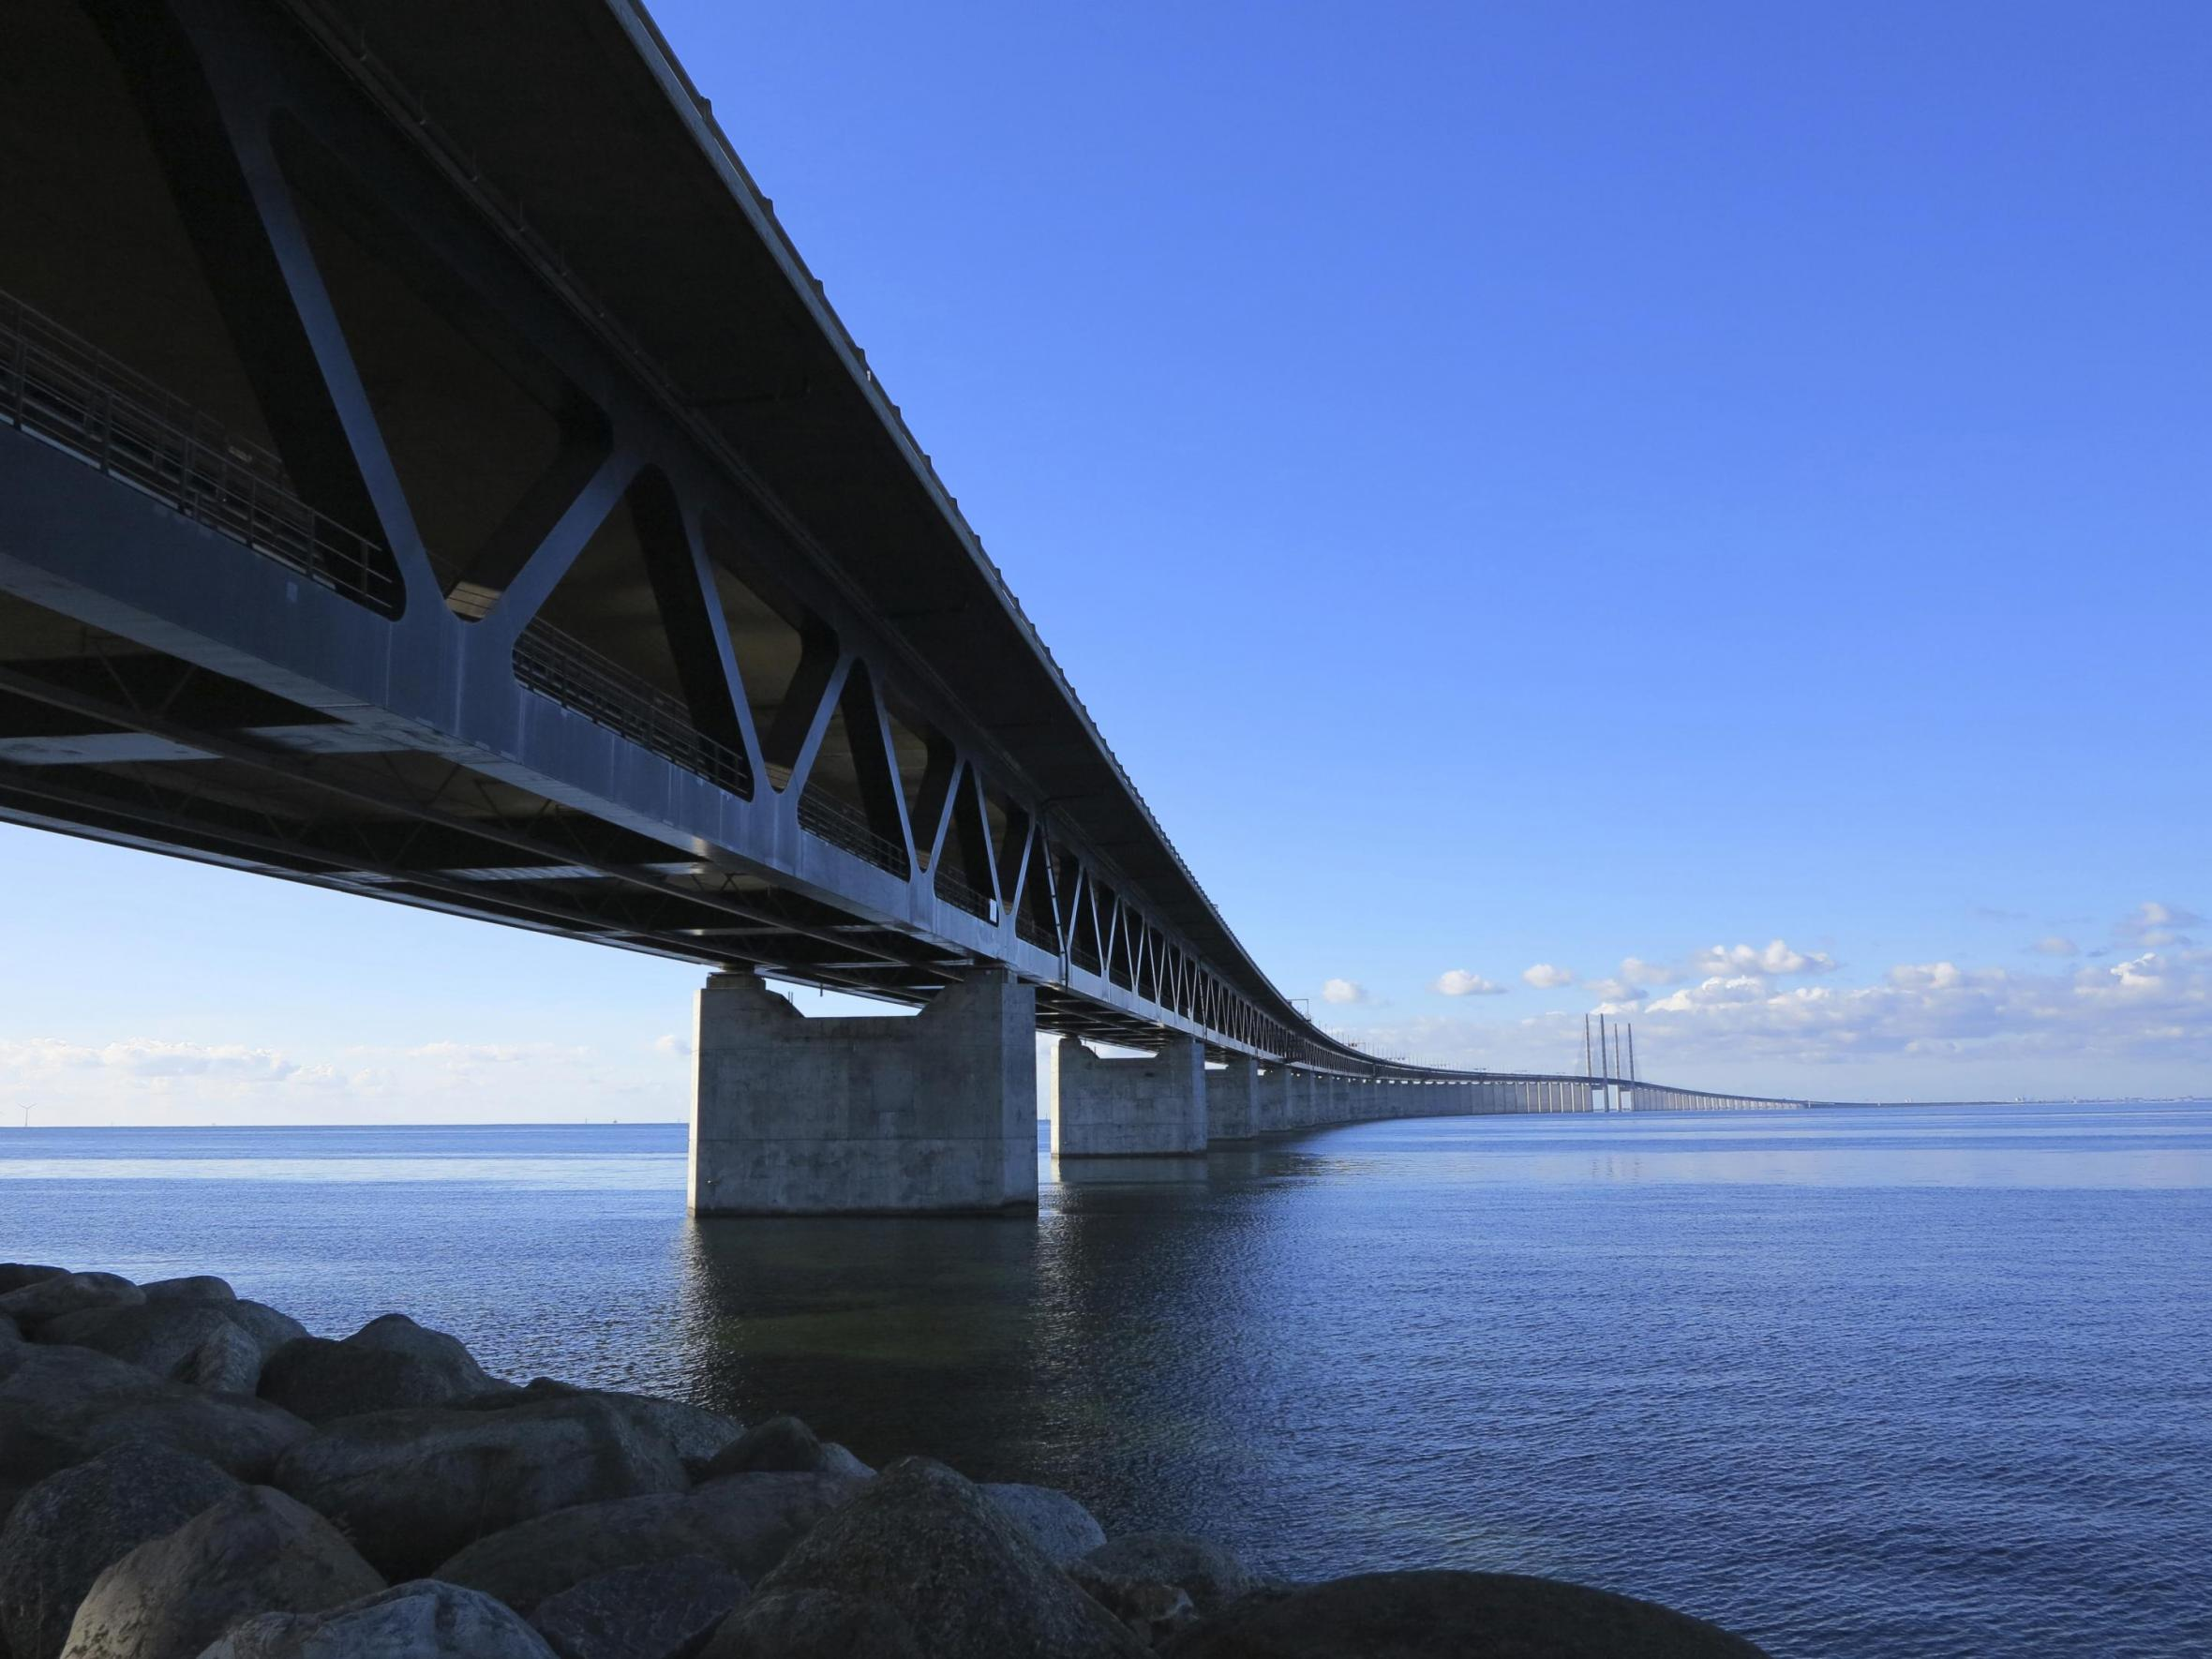 The Öresund Bridge from below with train tracks